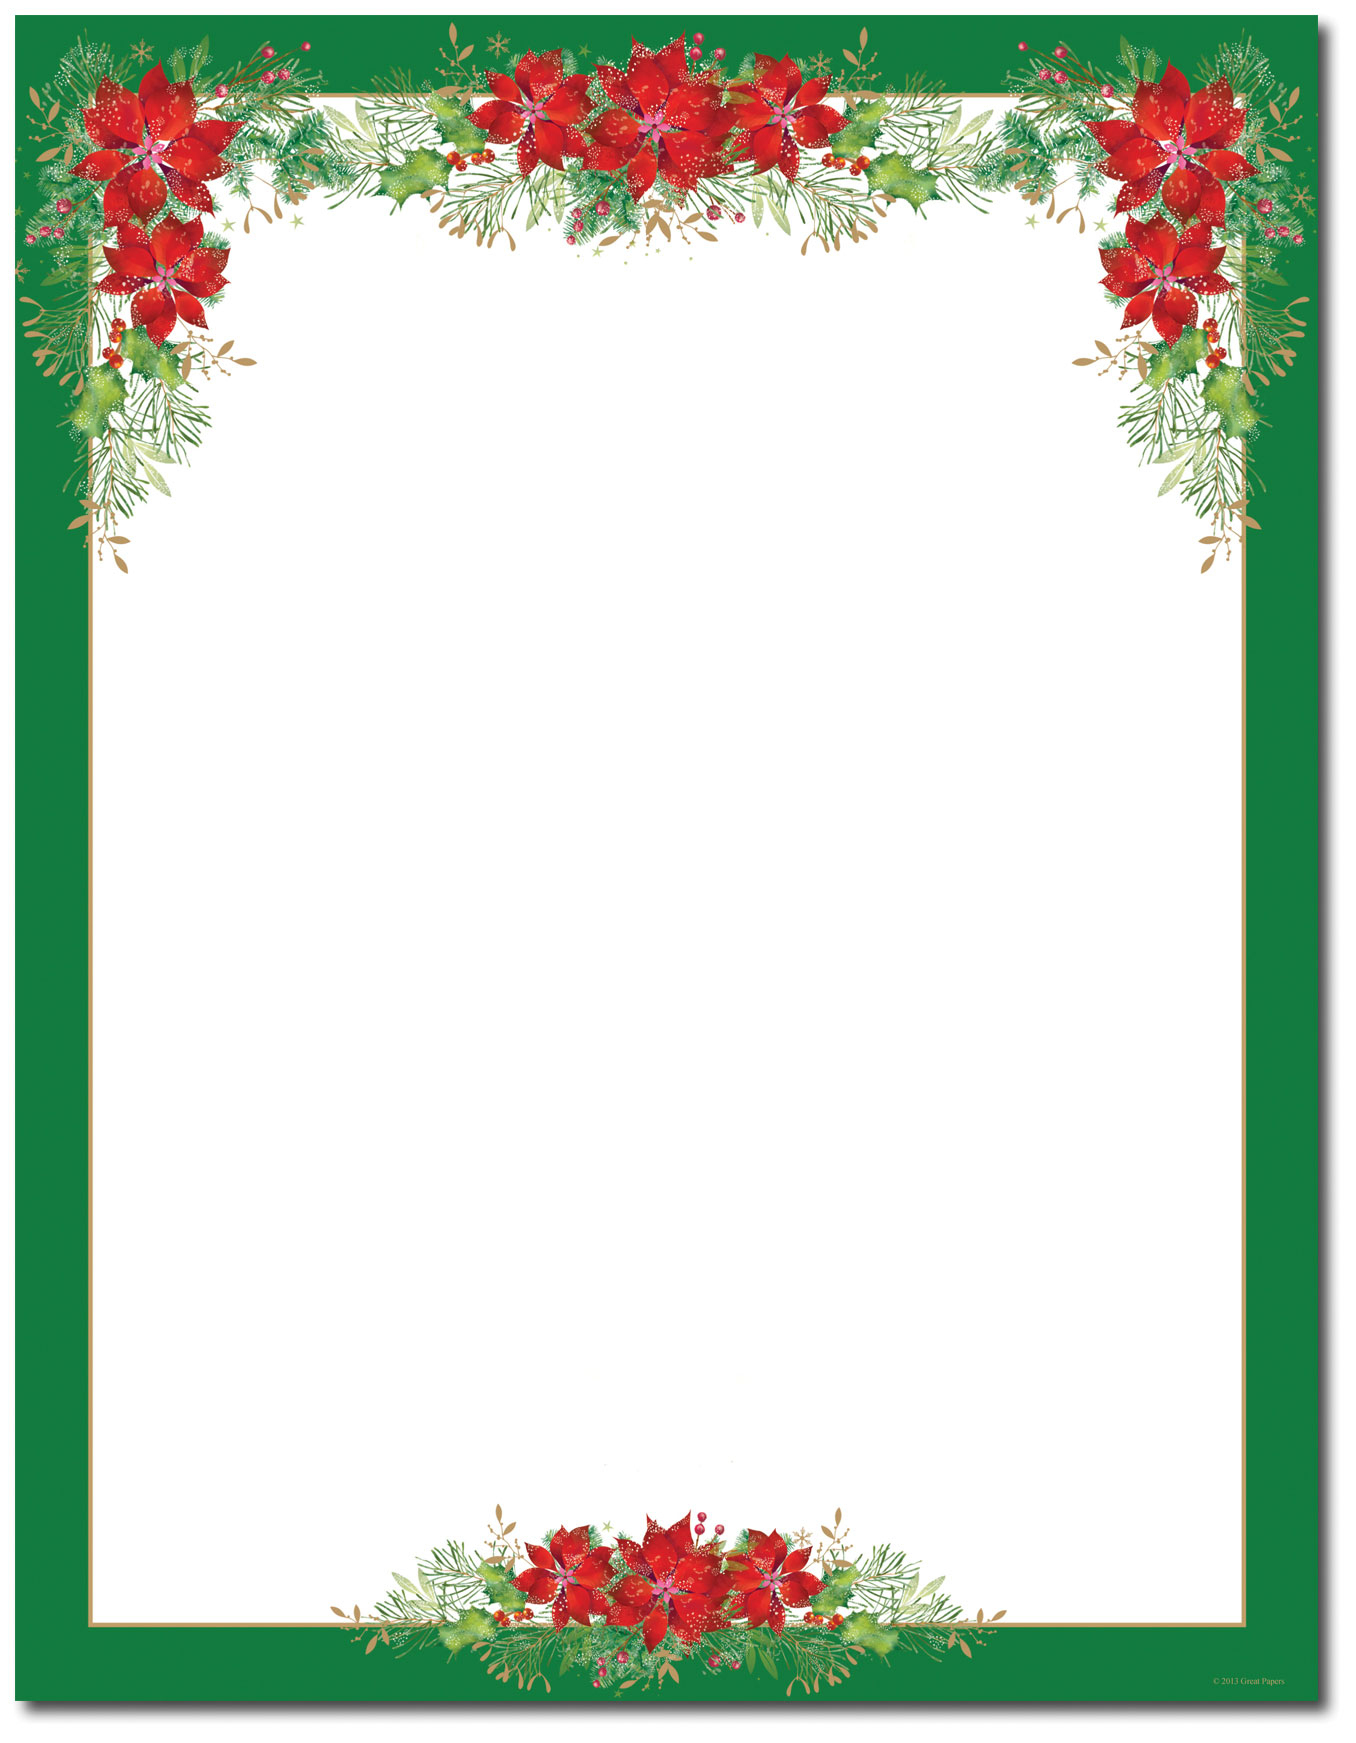 15 Poinsettia Page Border Designs Images - Free Printable Christmas - Free Printable Page Borders Christmas